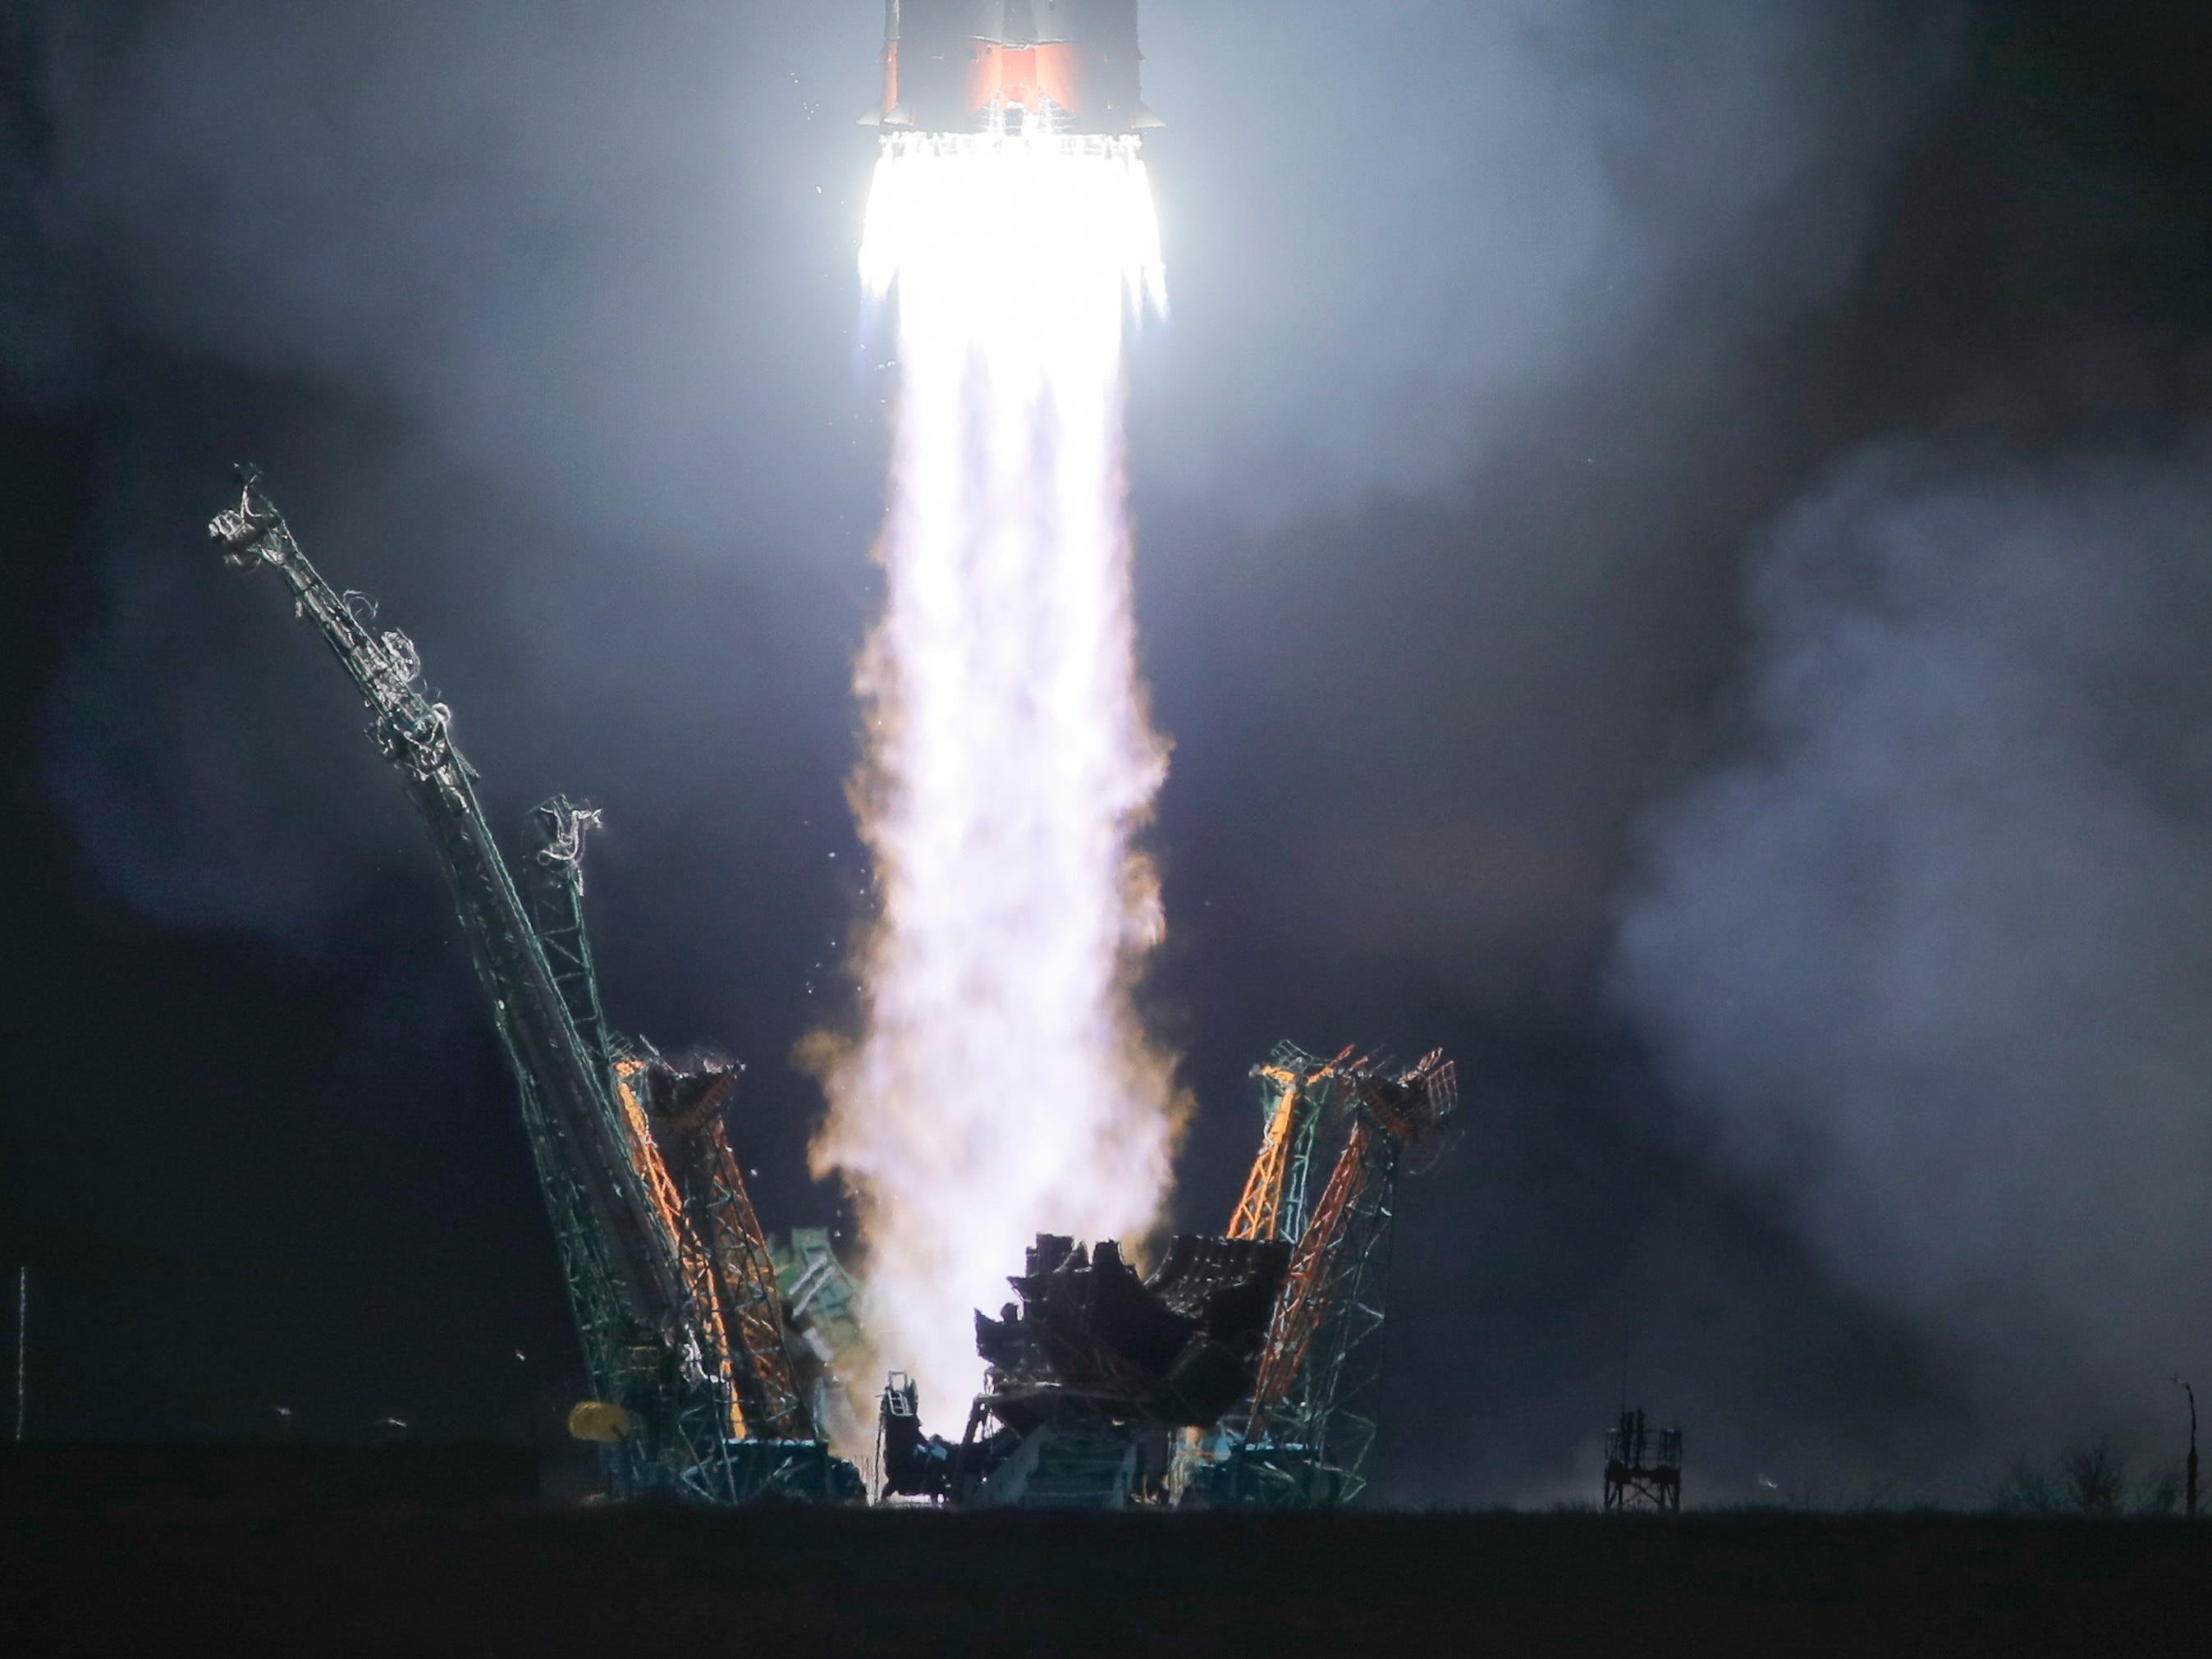 The Russian Soyuz rocket carrying NASA astronauts Nick Hague and Christina Koch along with cosmonaut Alexei Ovchinin lifts off from the Baikonur cosmodrome in Kazakhstan early Friday, March 15, 2019, bound for the International Space Station.